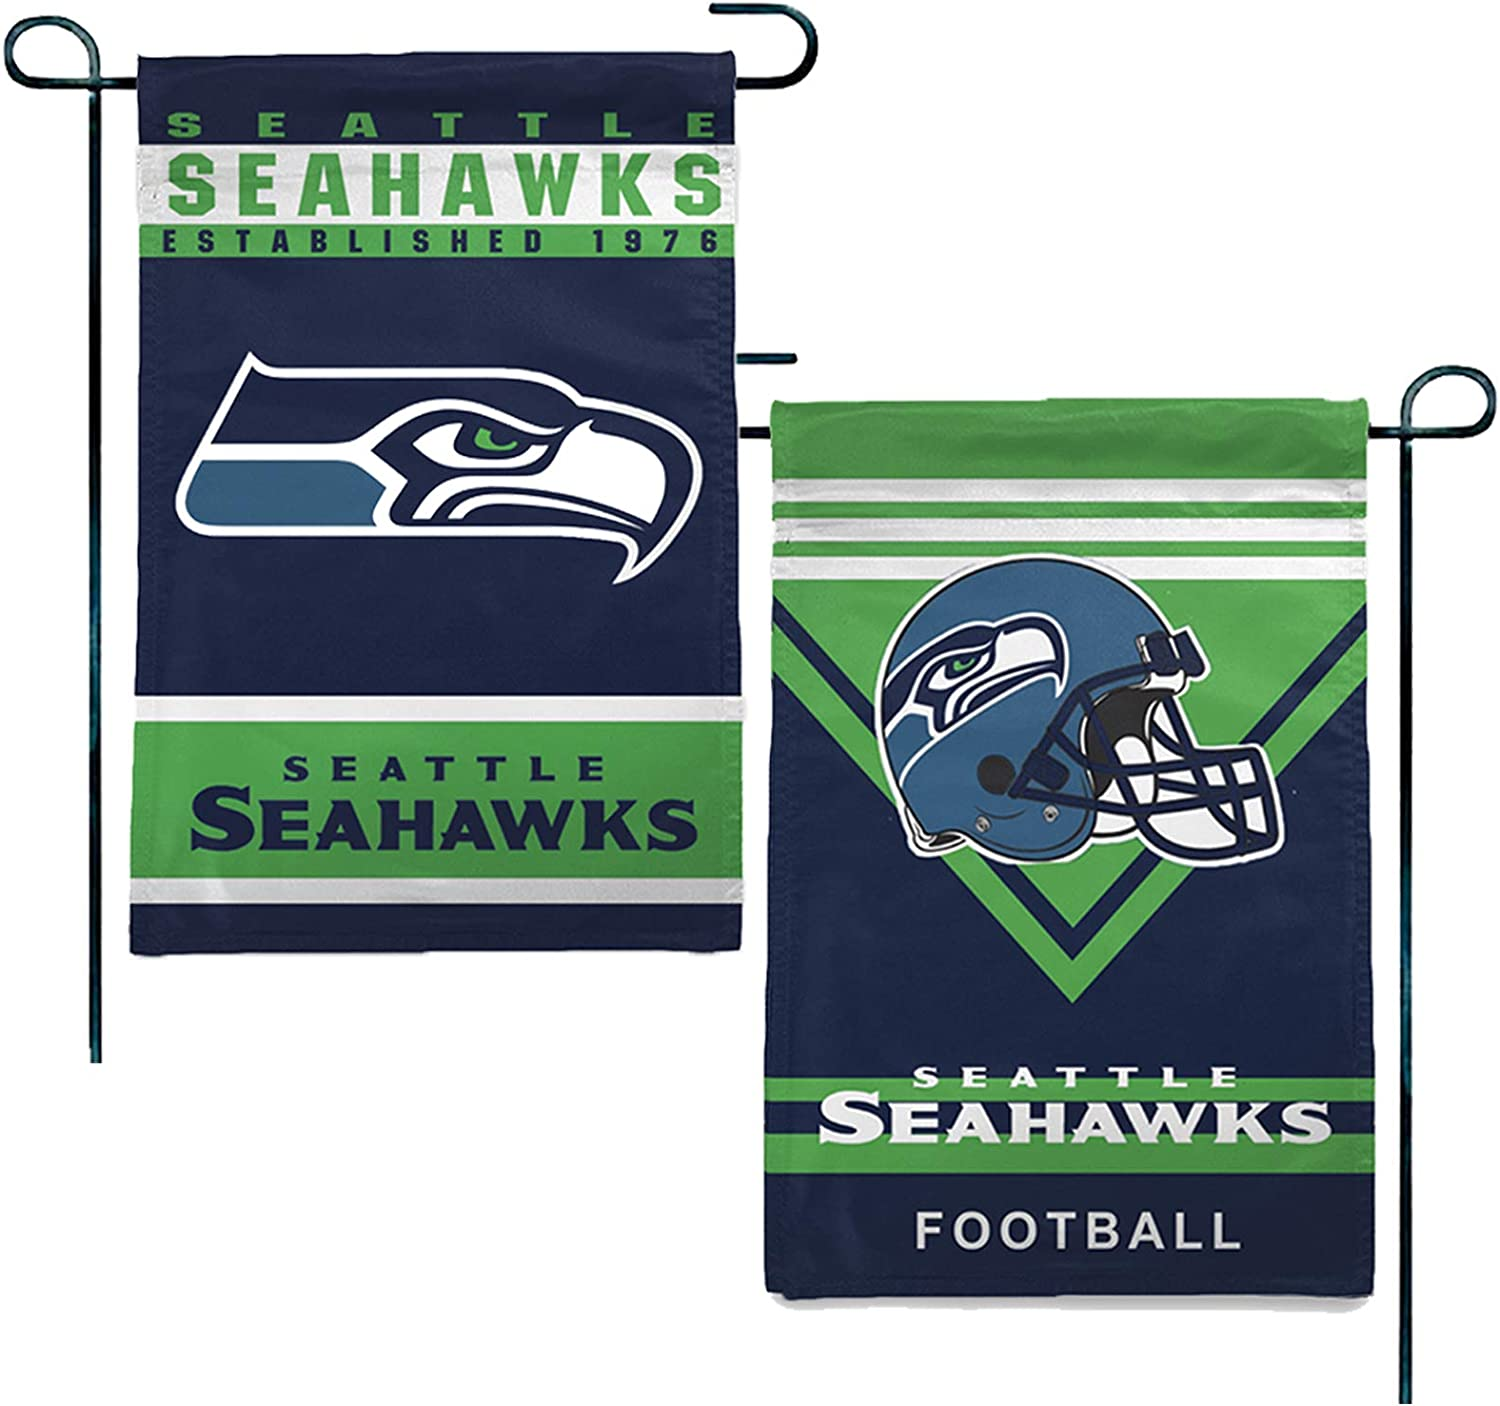 Seattle Seahawks Double Sided Football Garden Flag Sports Stripes Flags for House Decor 12.5x18 in